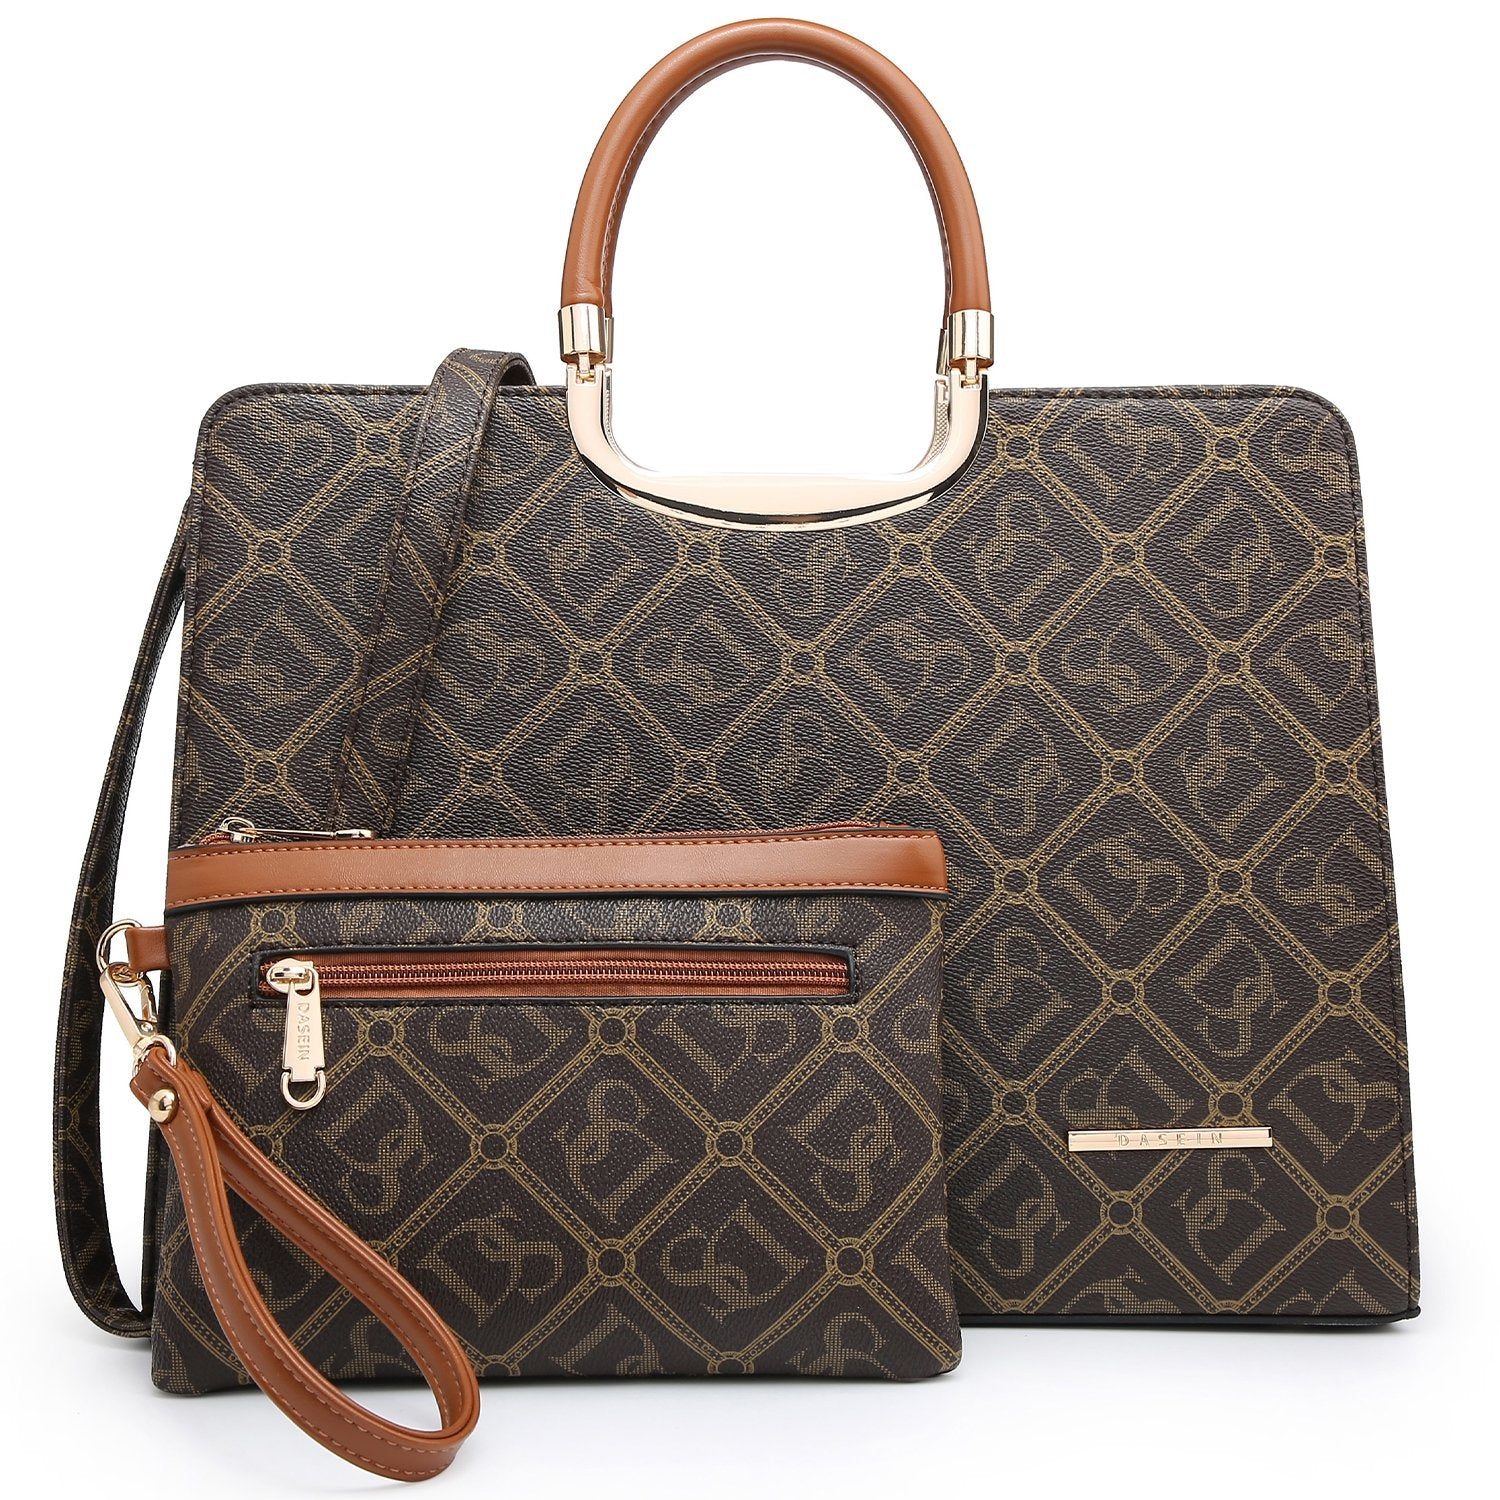 Monogram Briefcase with Matching Wristlet